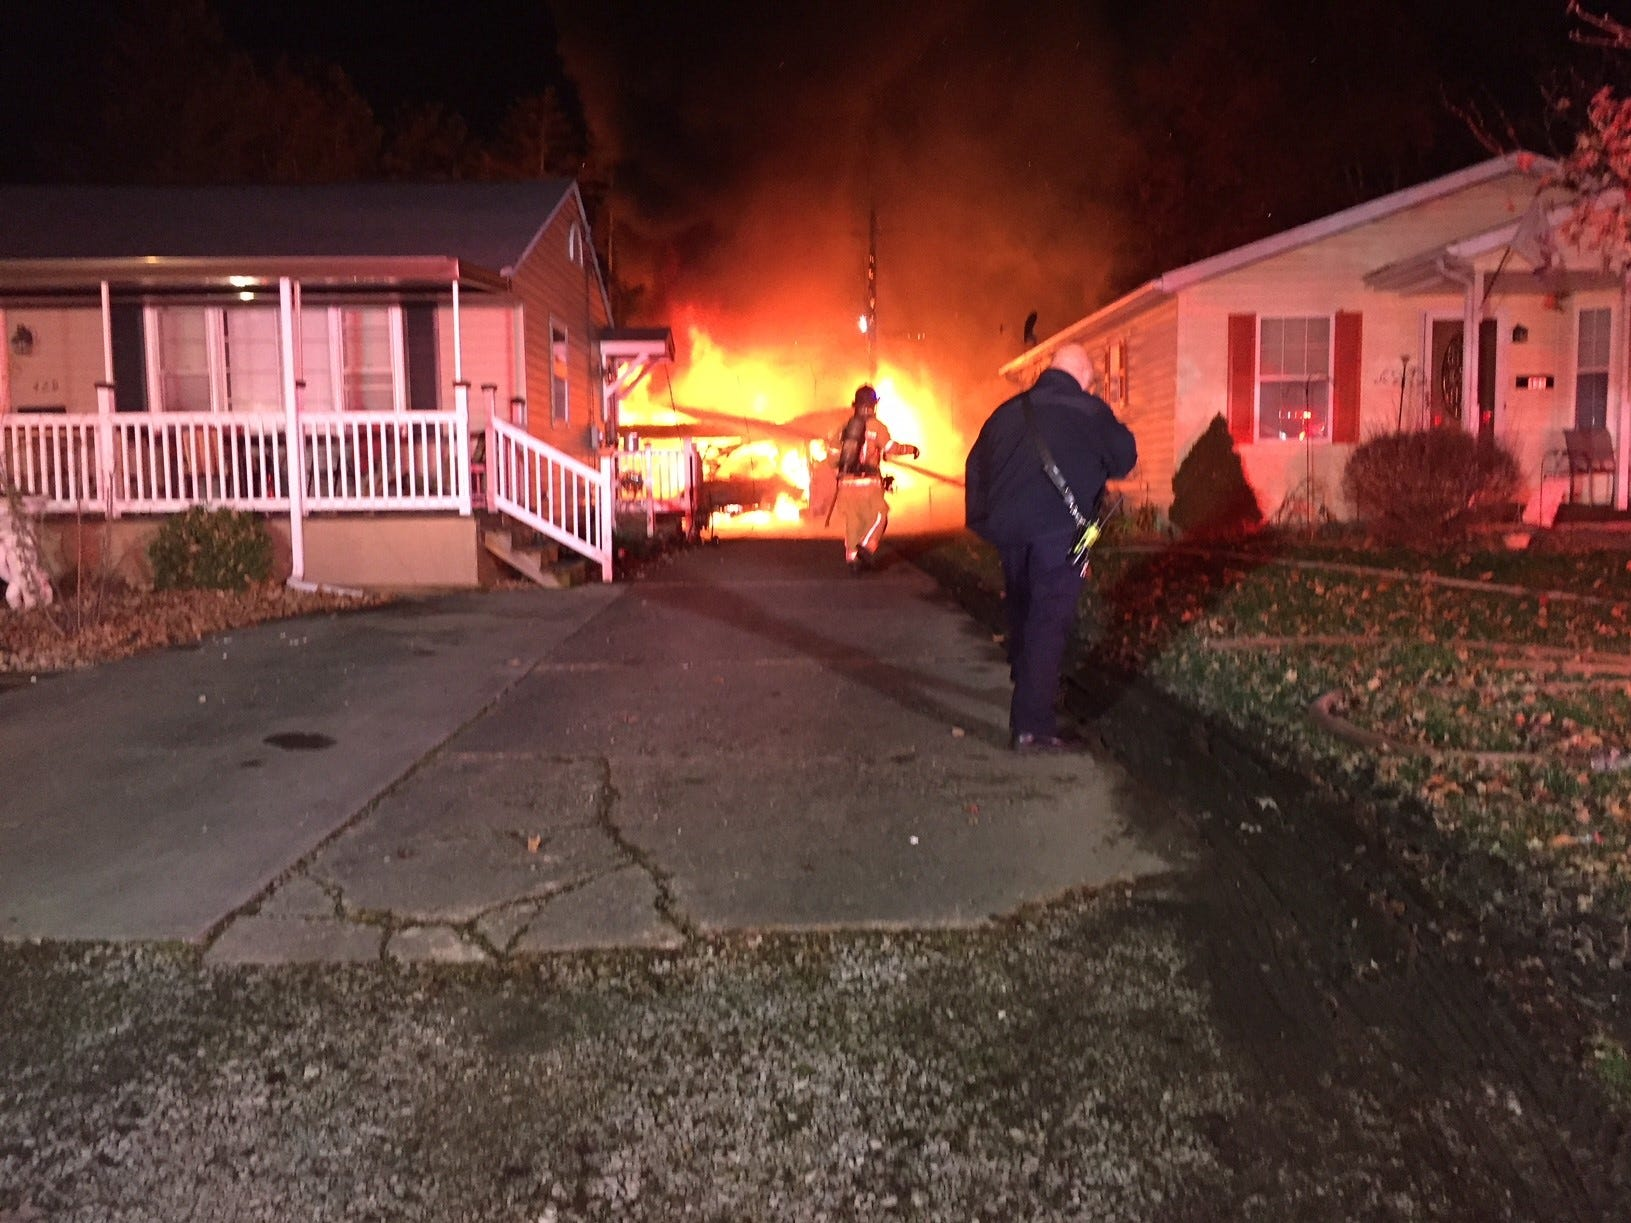 Newark firefighters battle a garage fire on 429 Sherwood Dr. West around 2 a.m. Wednesday. One occupant was taken to Licking Memorial Hospital.